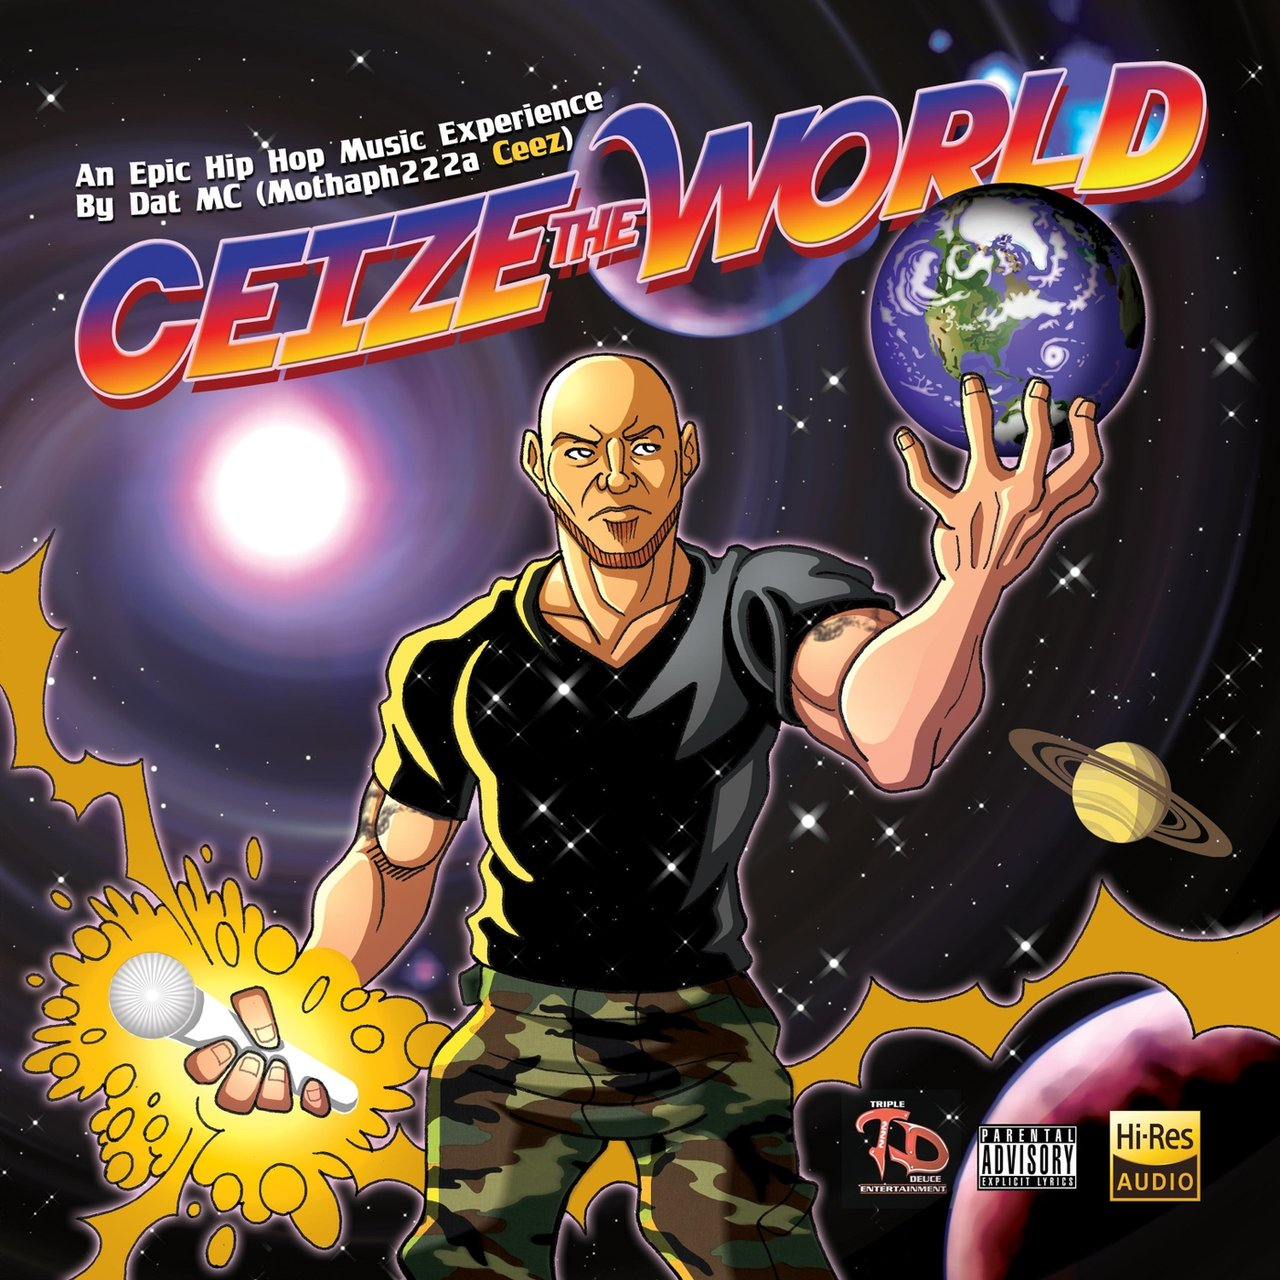 Ceize the World